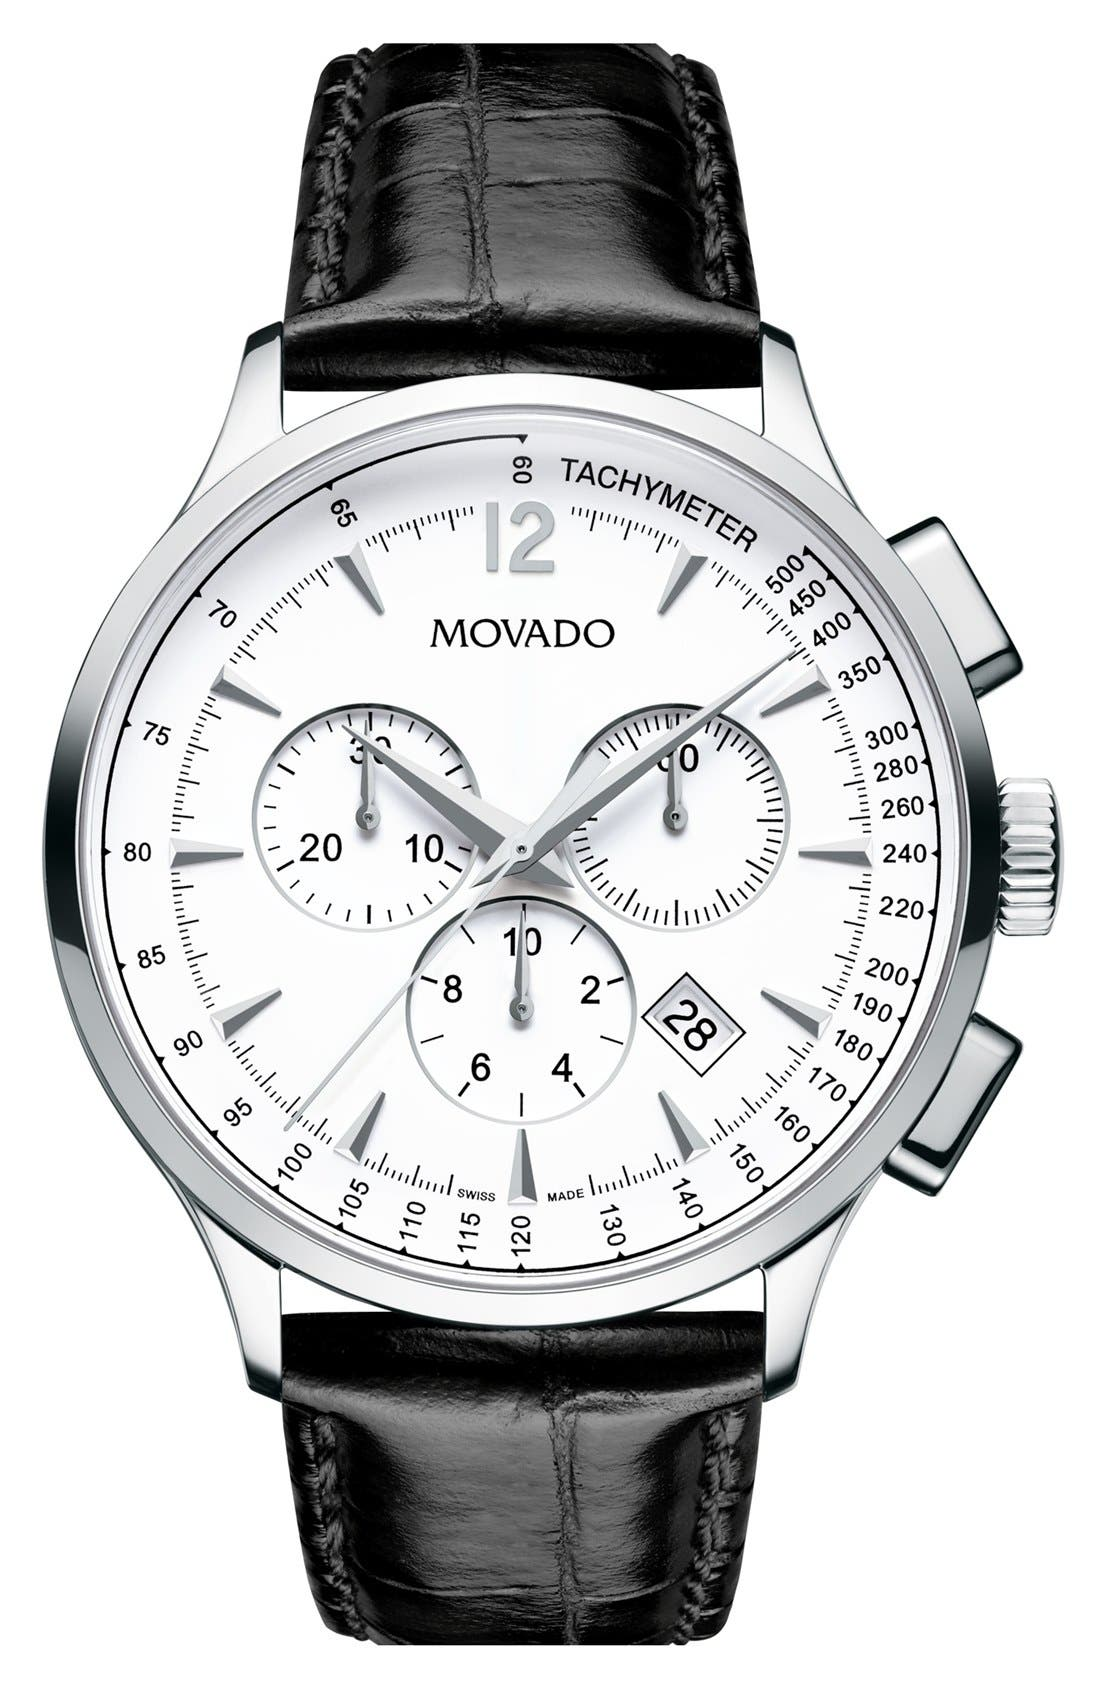 MOVADO 'Circa' Round Chronograph Watch, 42mm